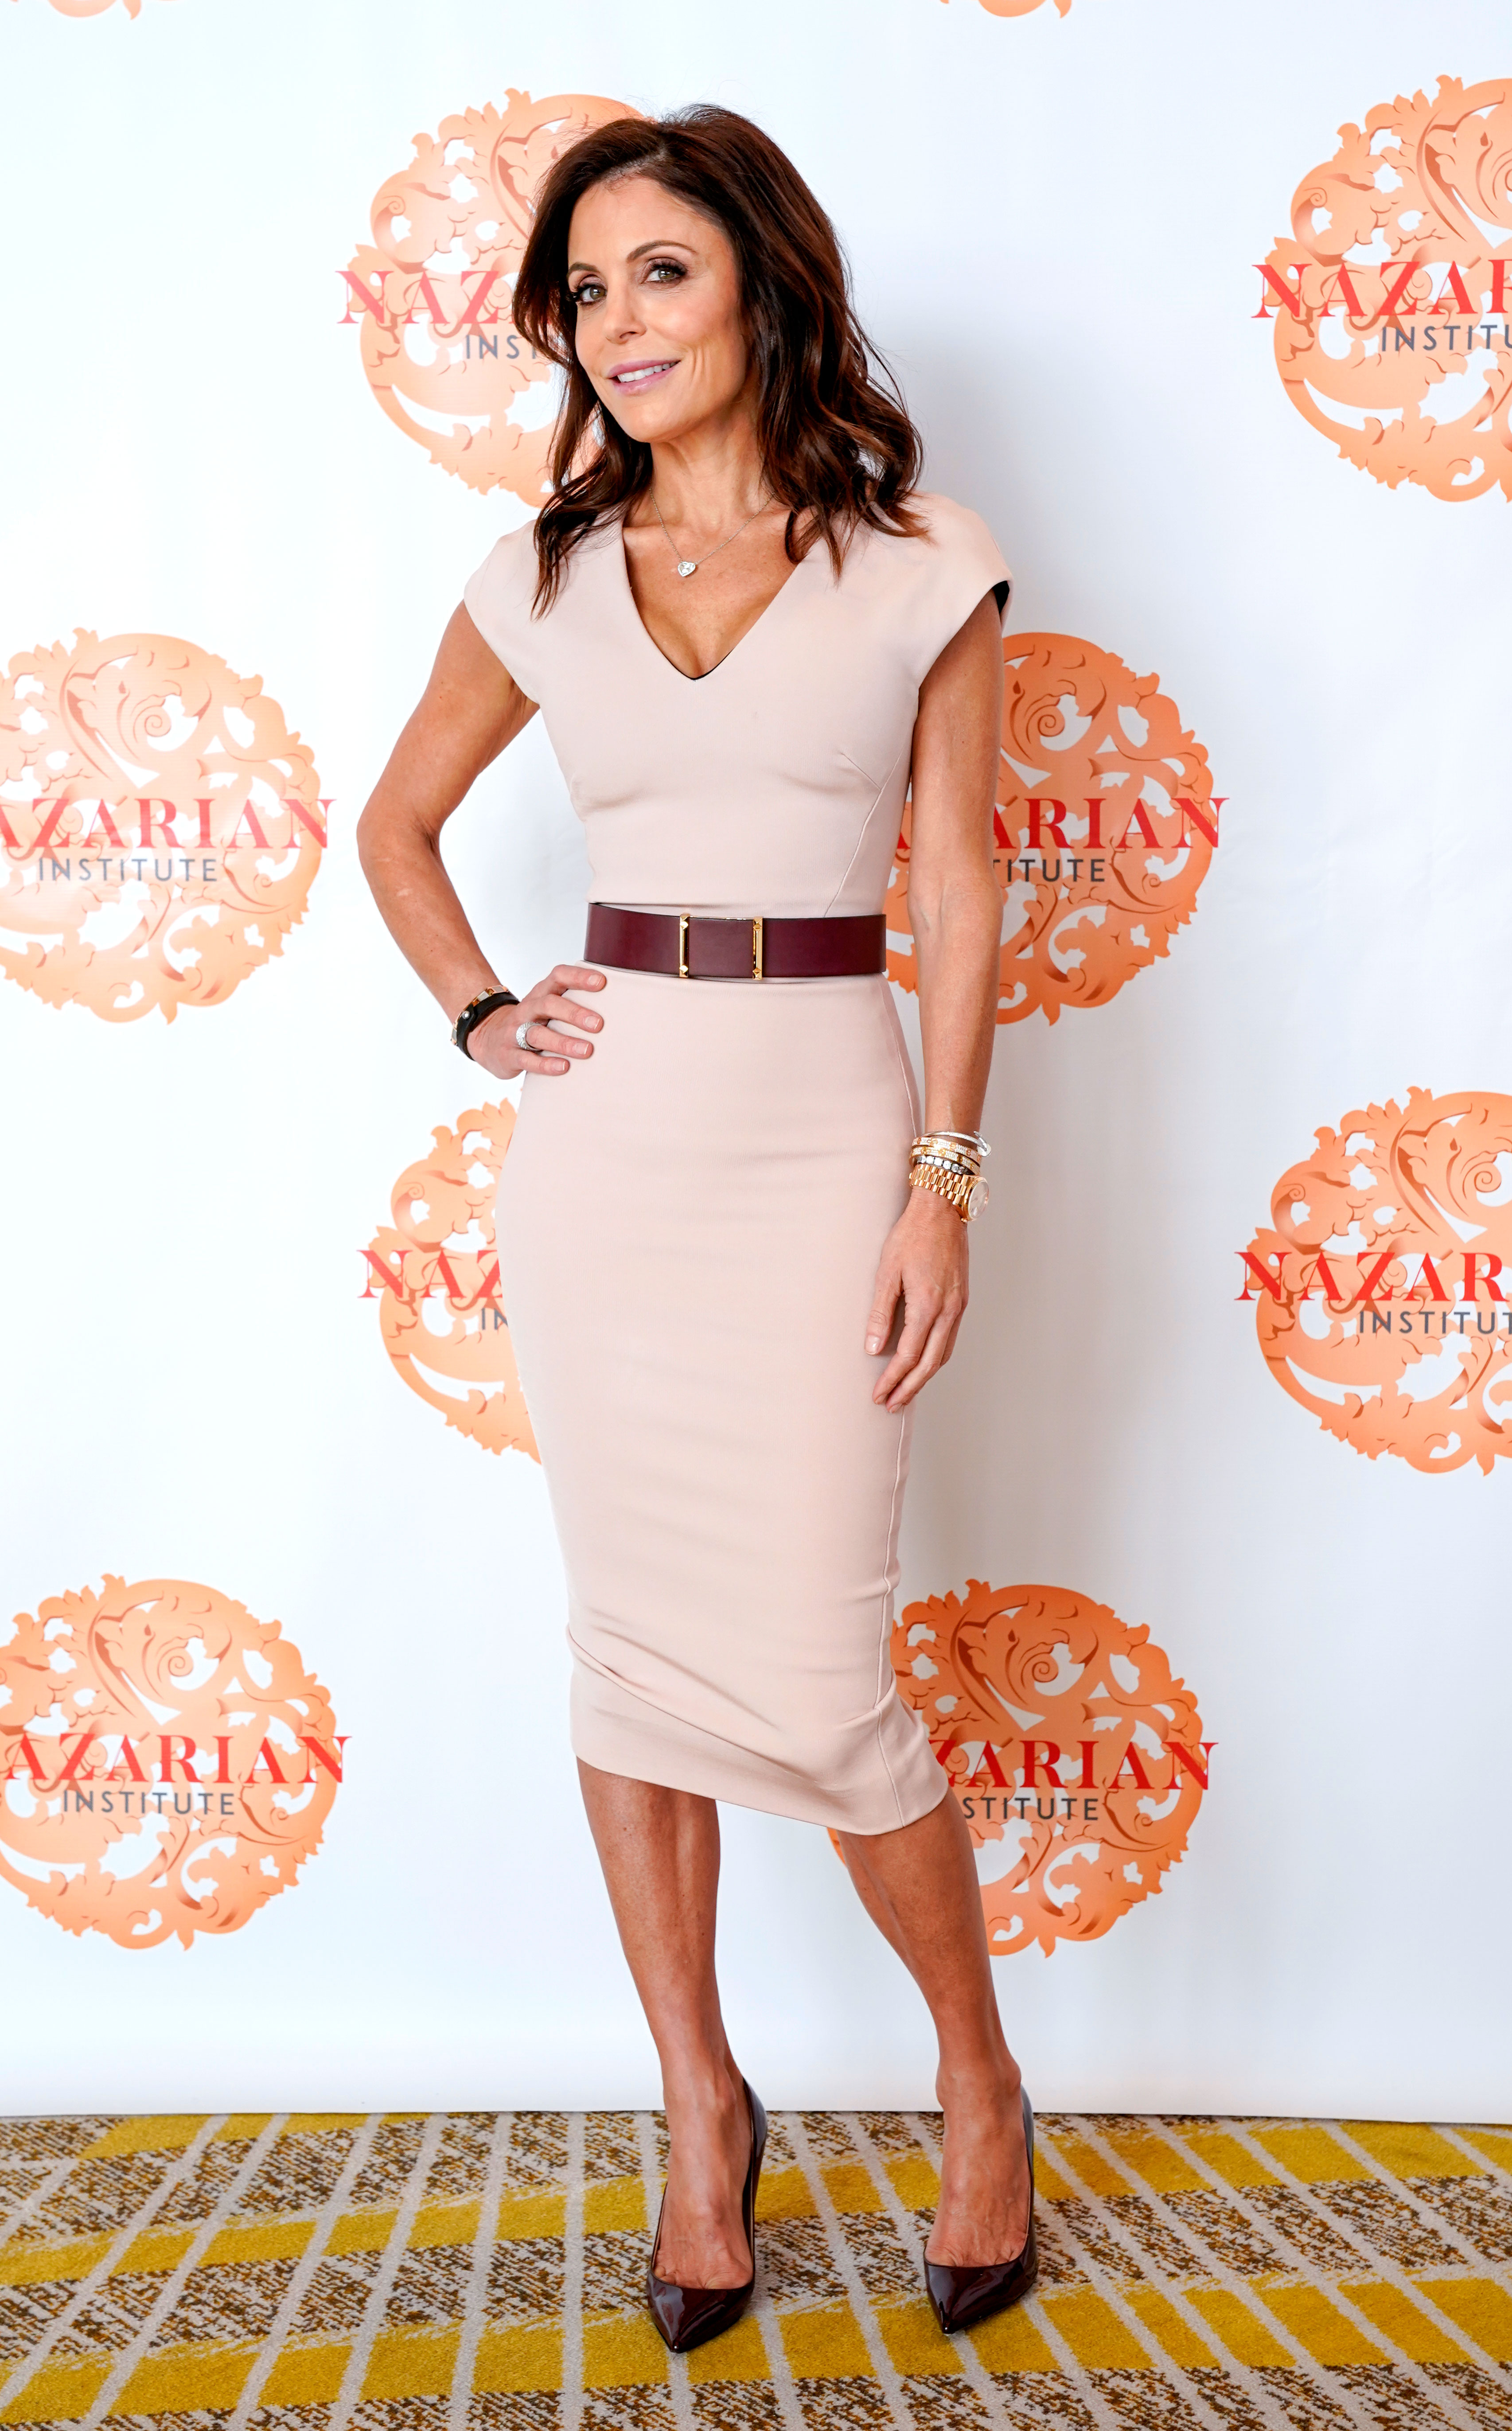 Bethenny Frankel Tells Body-Shamers to 'F—ck Off': 'Yeah I'm Skinny' - Bethenny Frankel attends day one of the 2019 Nazarian Institute on January 26, 2019 in Los Angeles, California.